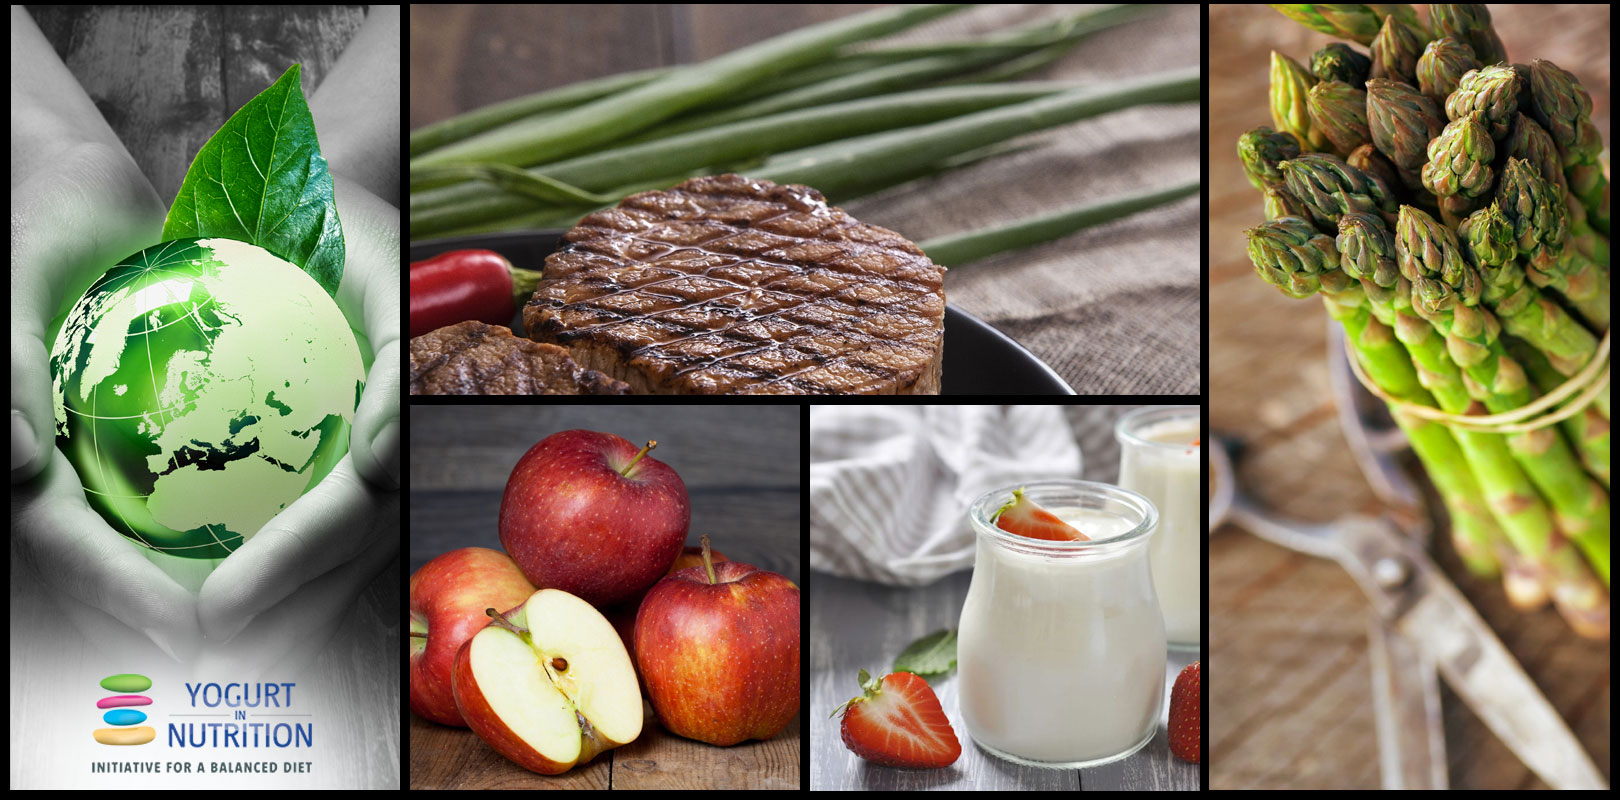 can a healthy diet be sustainable with meat and dairy